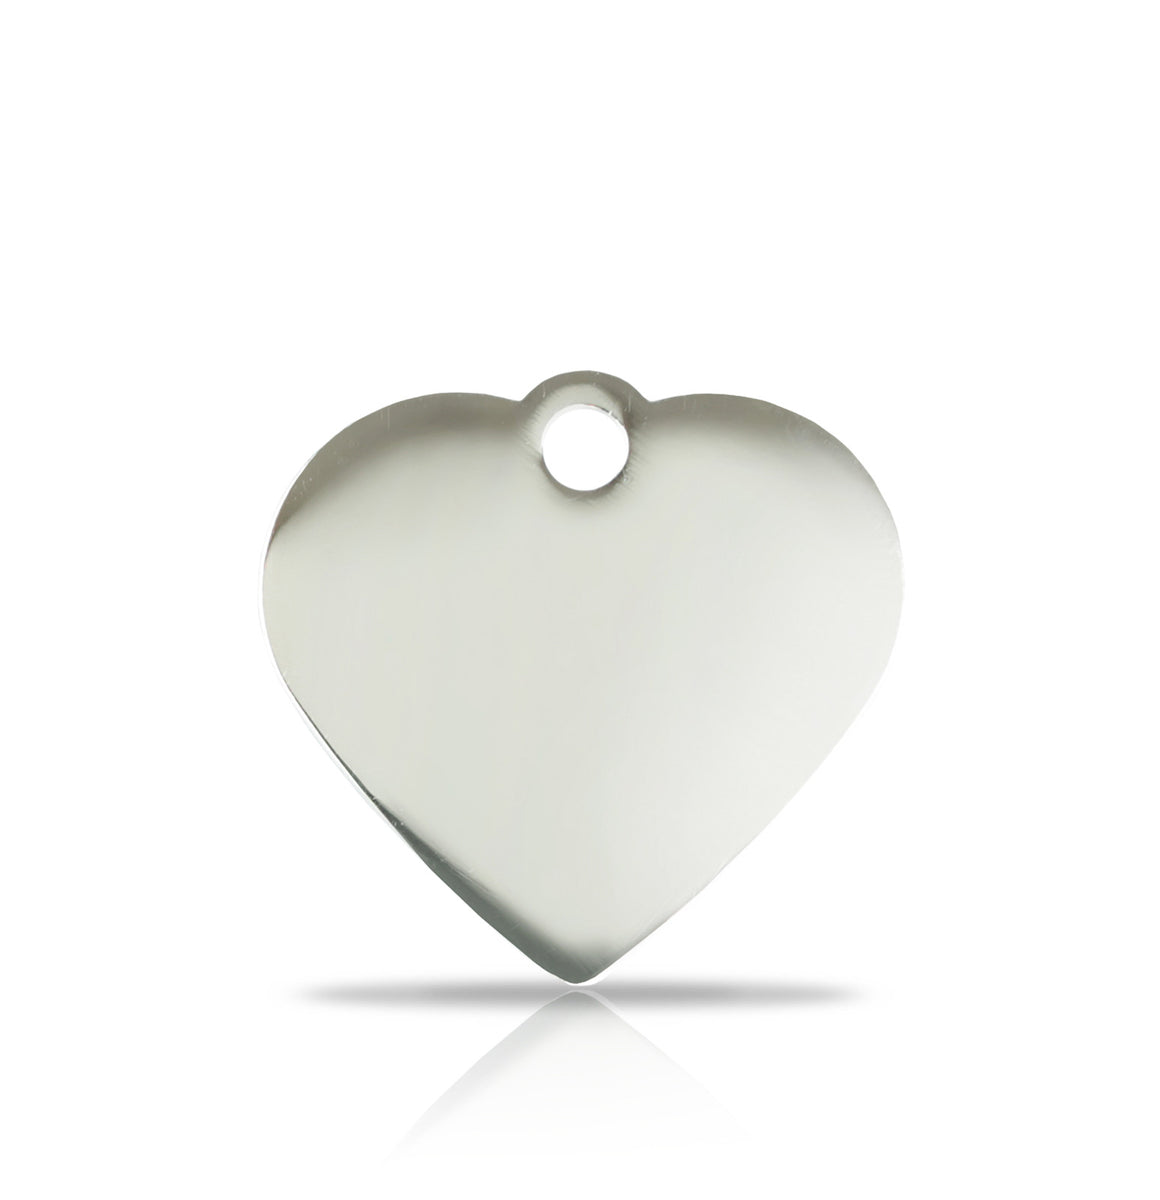 TaggIT Prestige Small Heart Silver iMarc Pet Tag